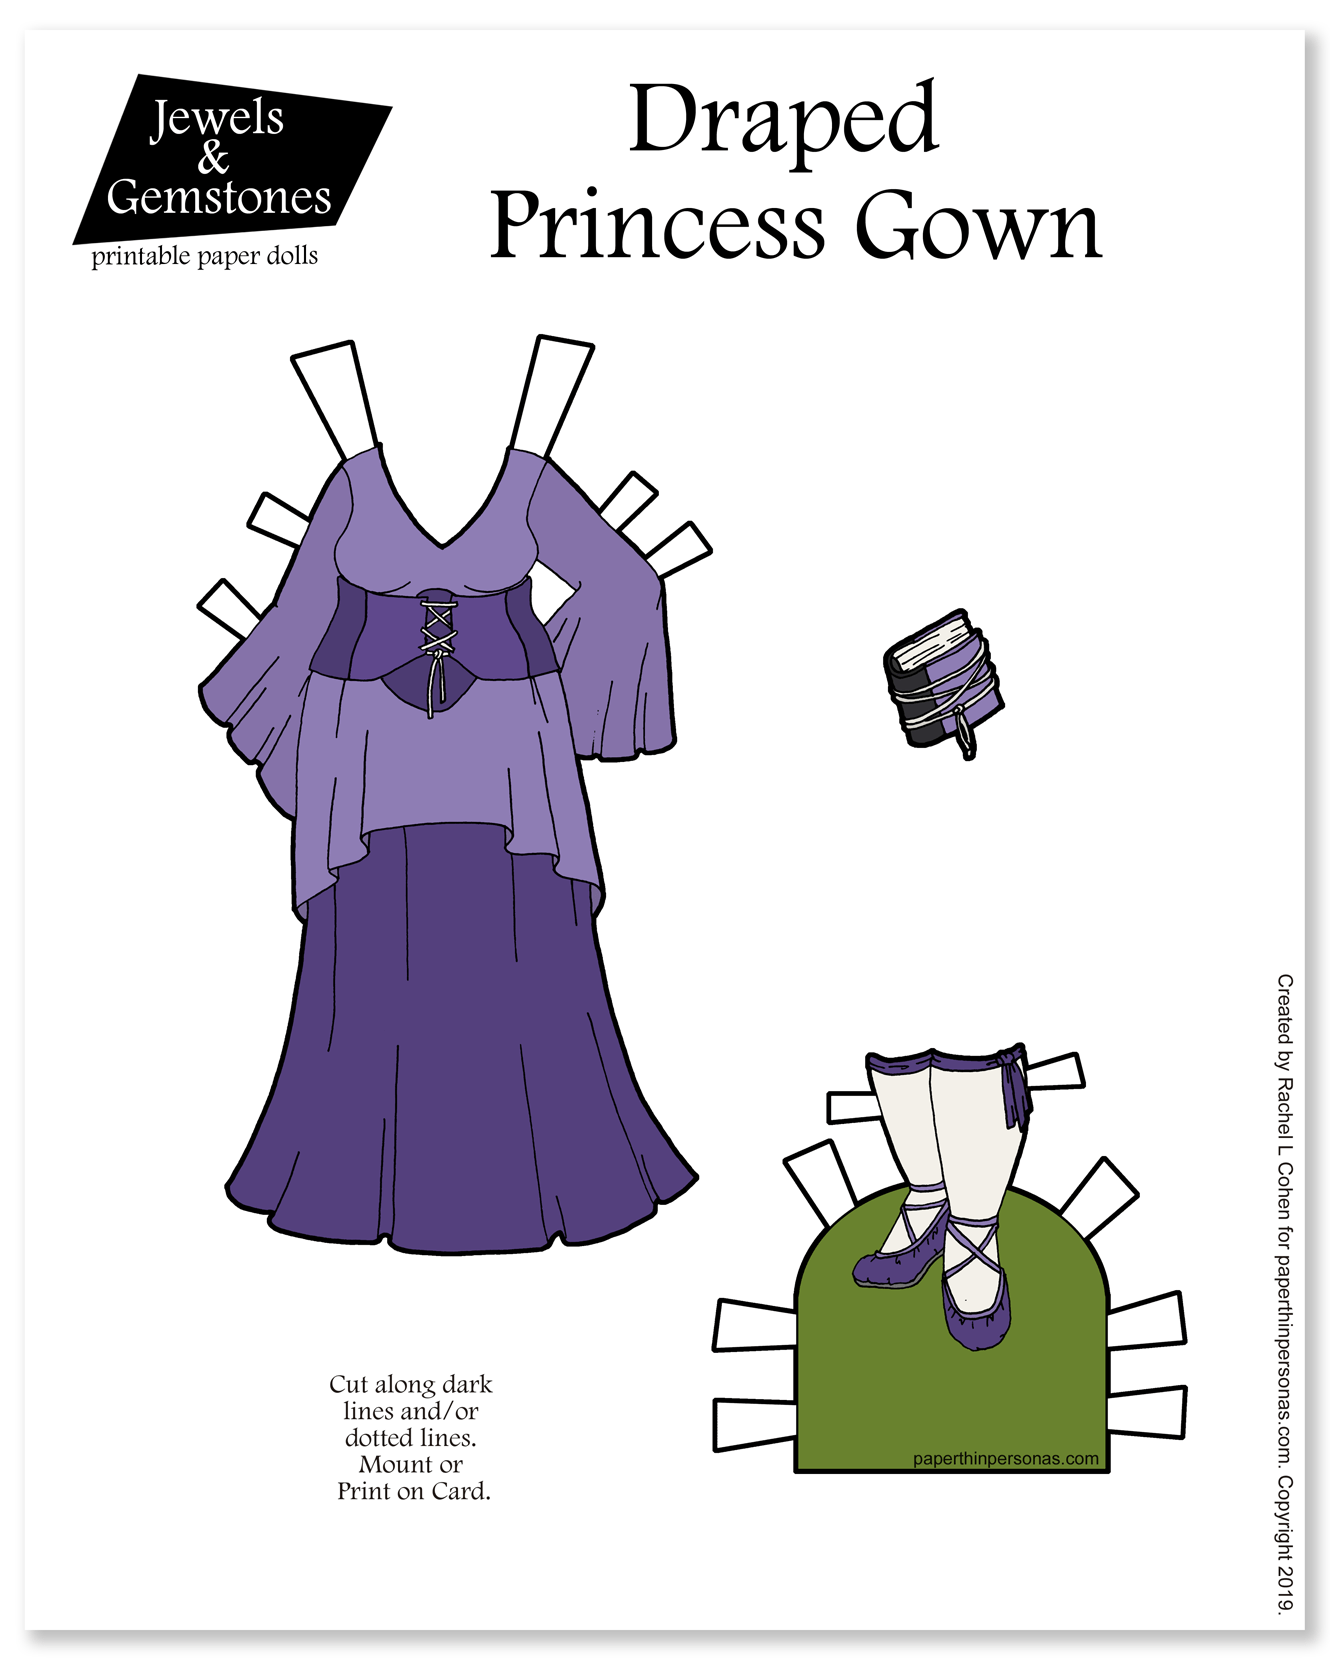 Paper Thin Personas • Page 11 of 197 • Whimsical Paper Dolls for